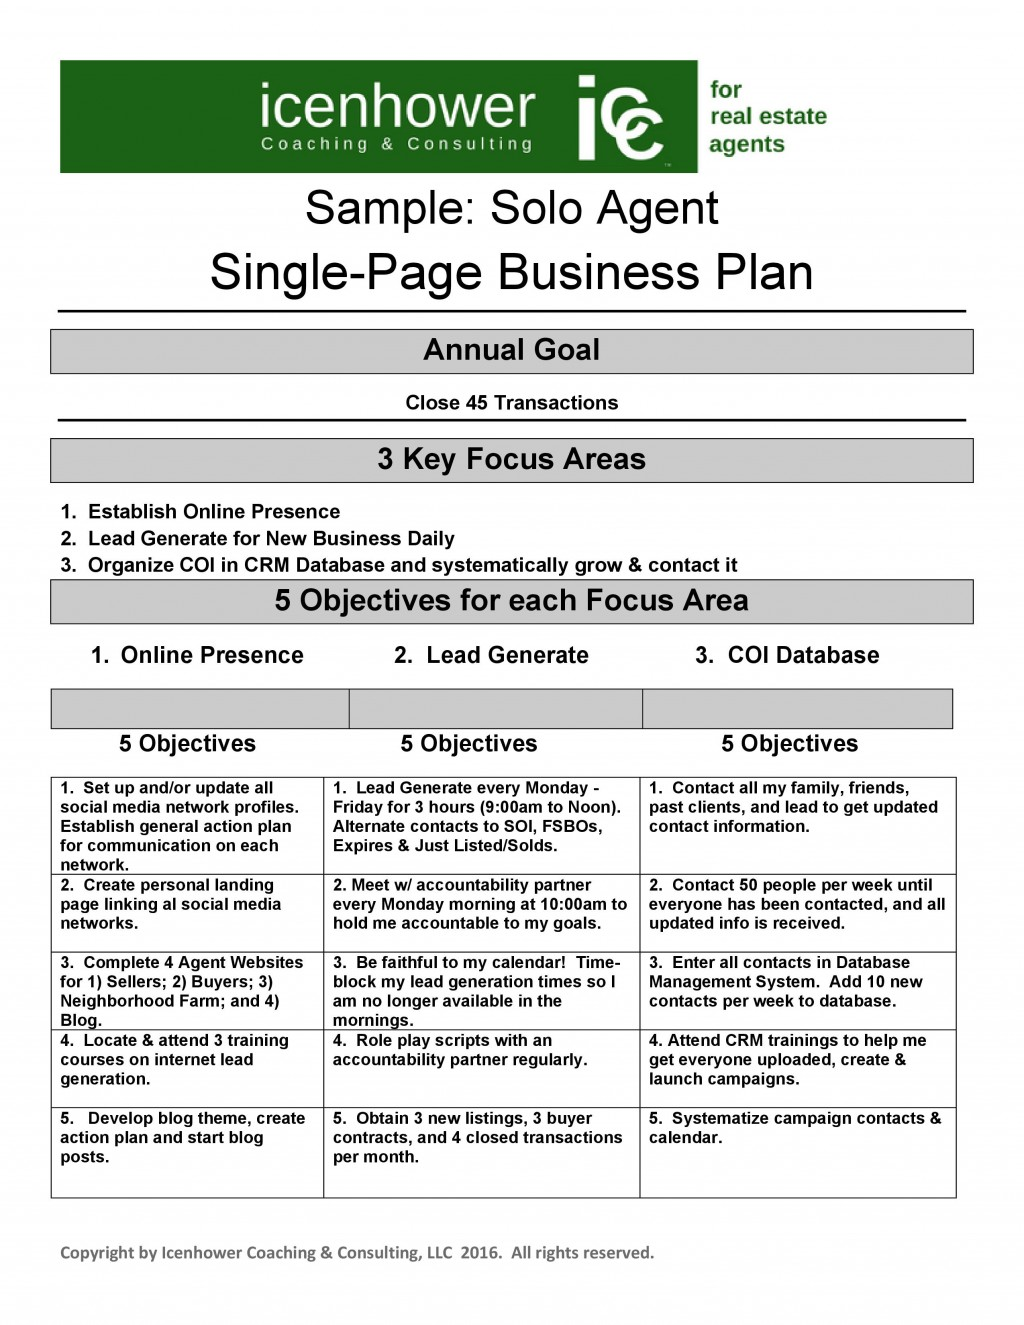 007 Astounding Real Estate Busines Plan Template Image  Free Download Investing Pdf Company ExampleLarge